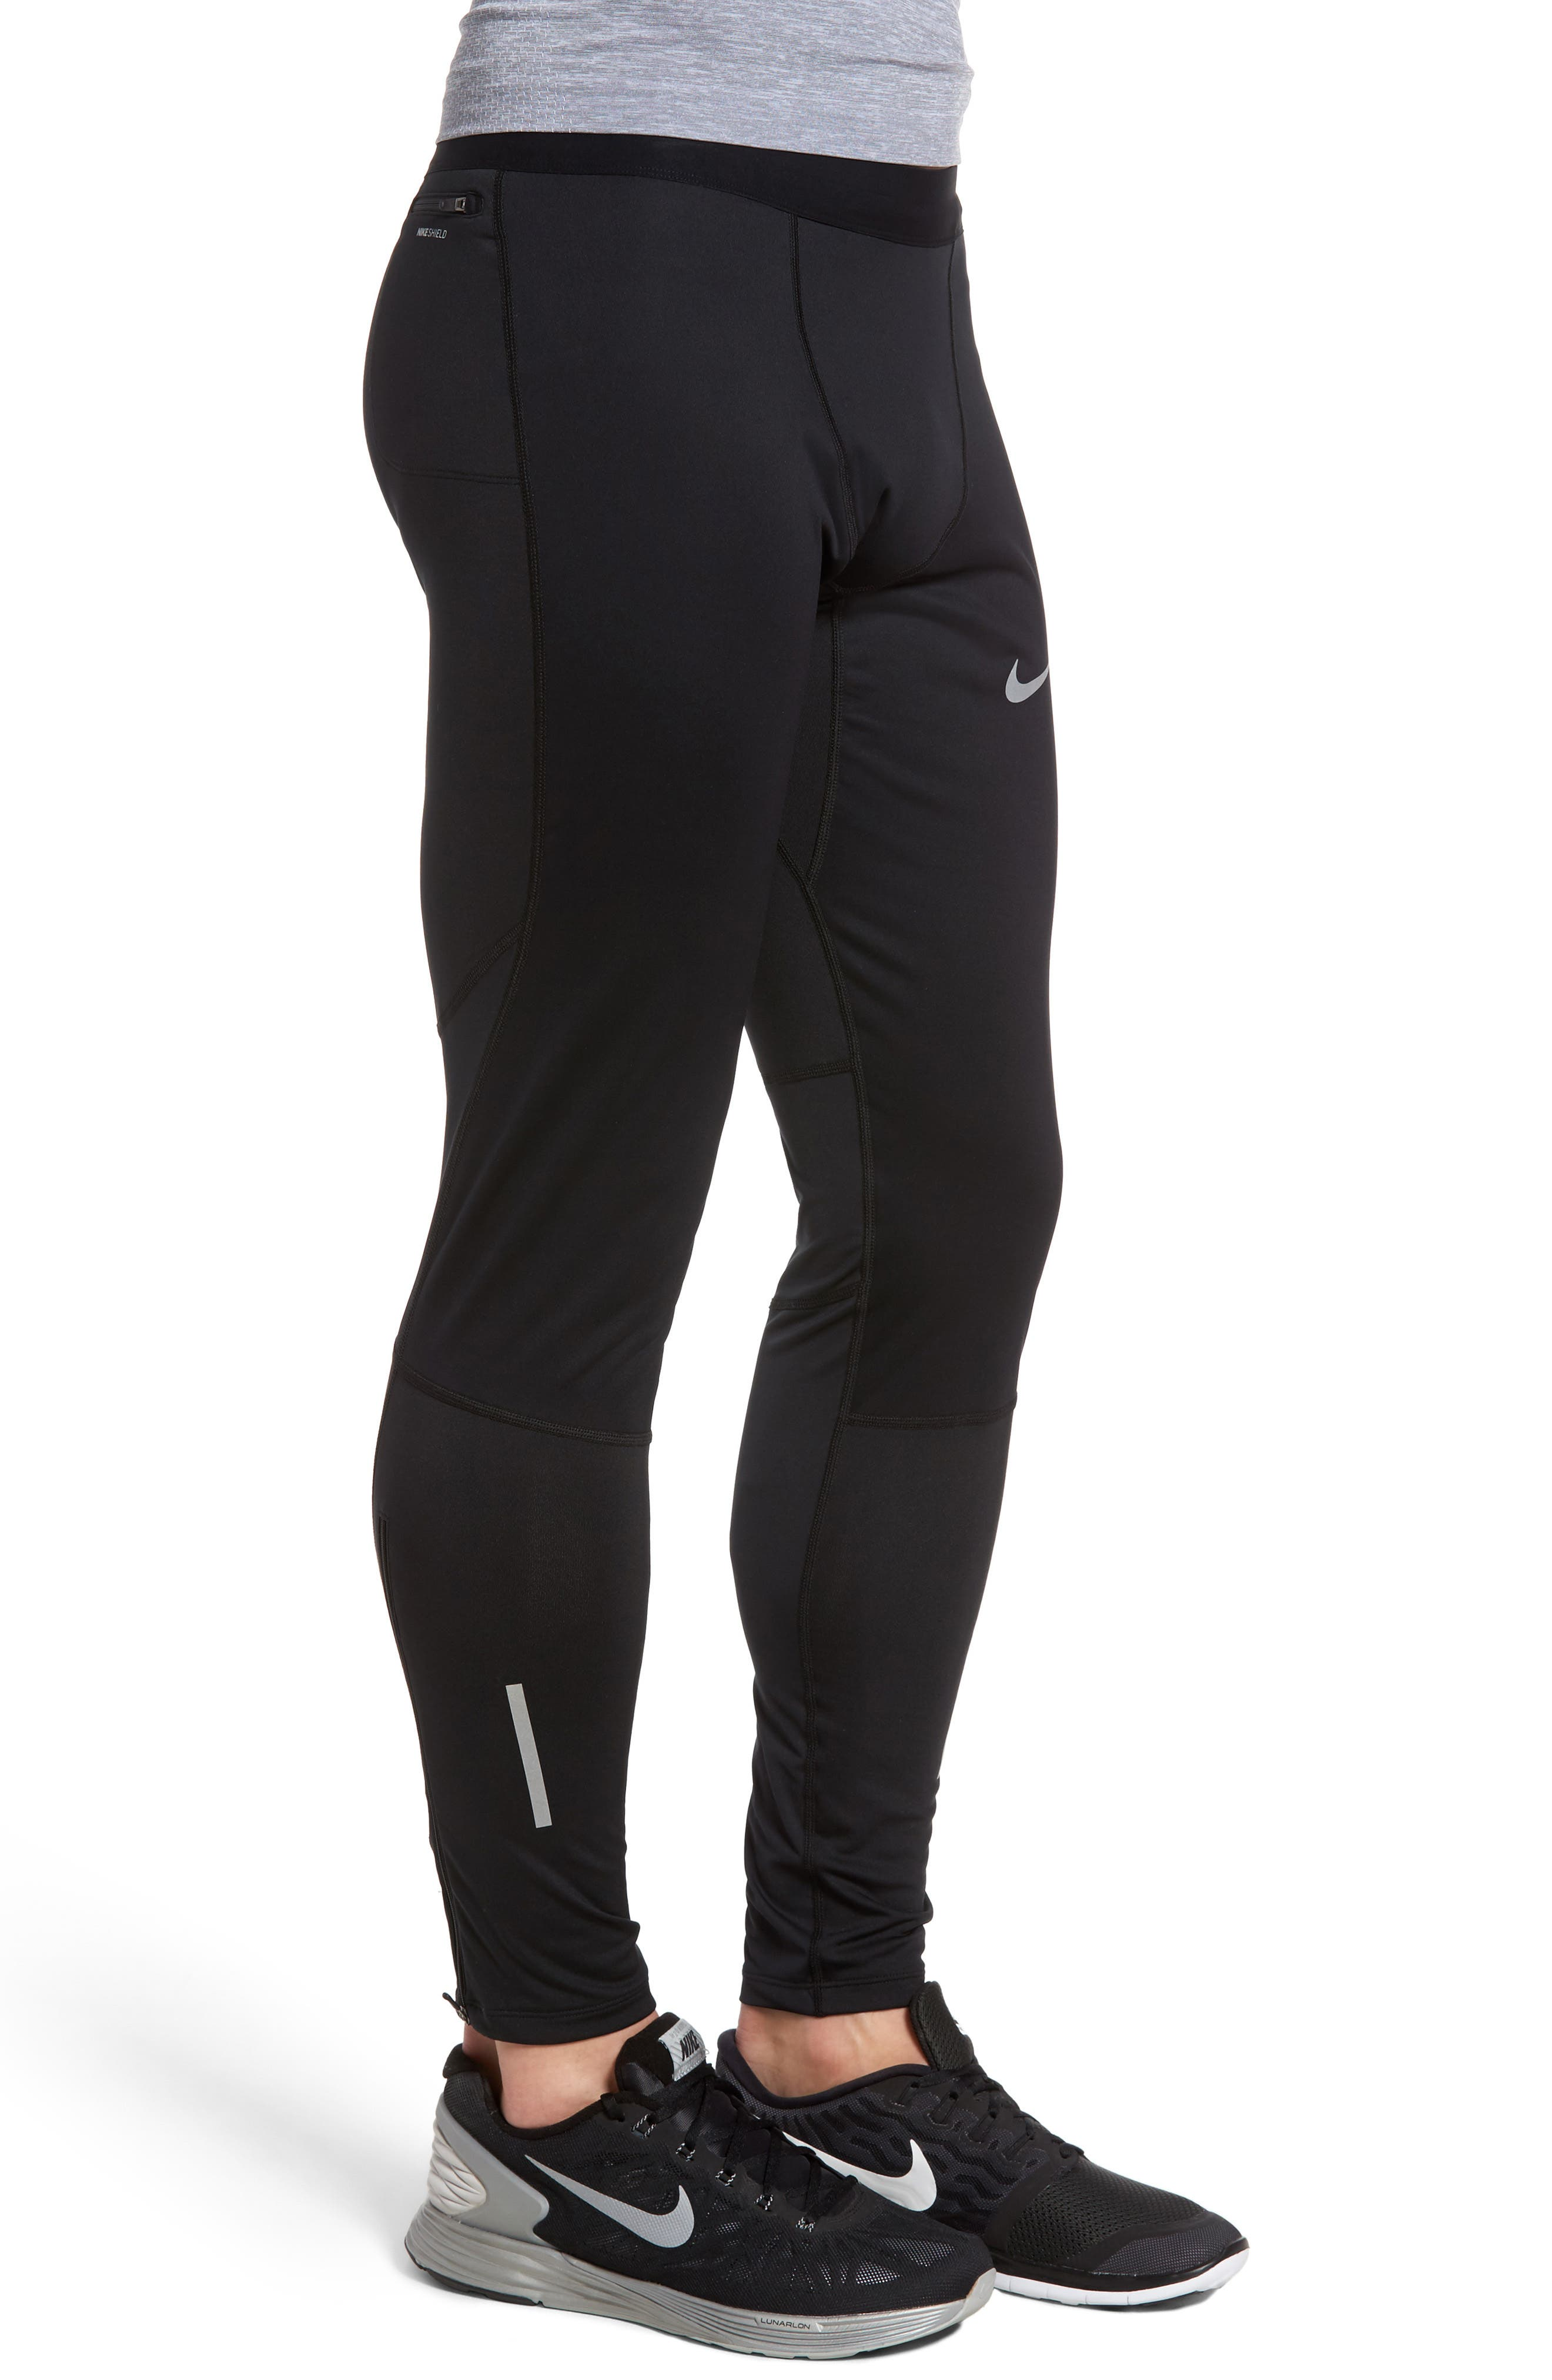 Shield Tech Weather Resistant Running Tights,                             Alternate thumbnail 3, color,                             010